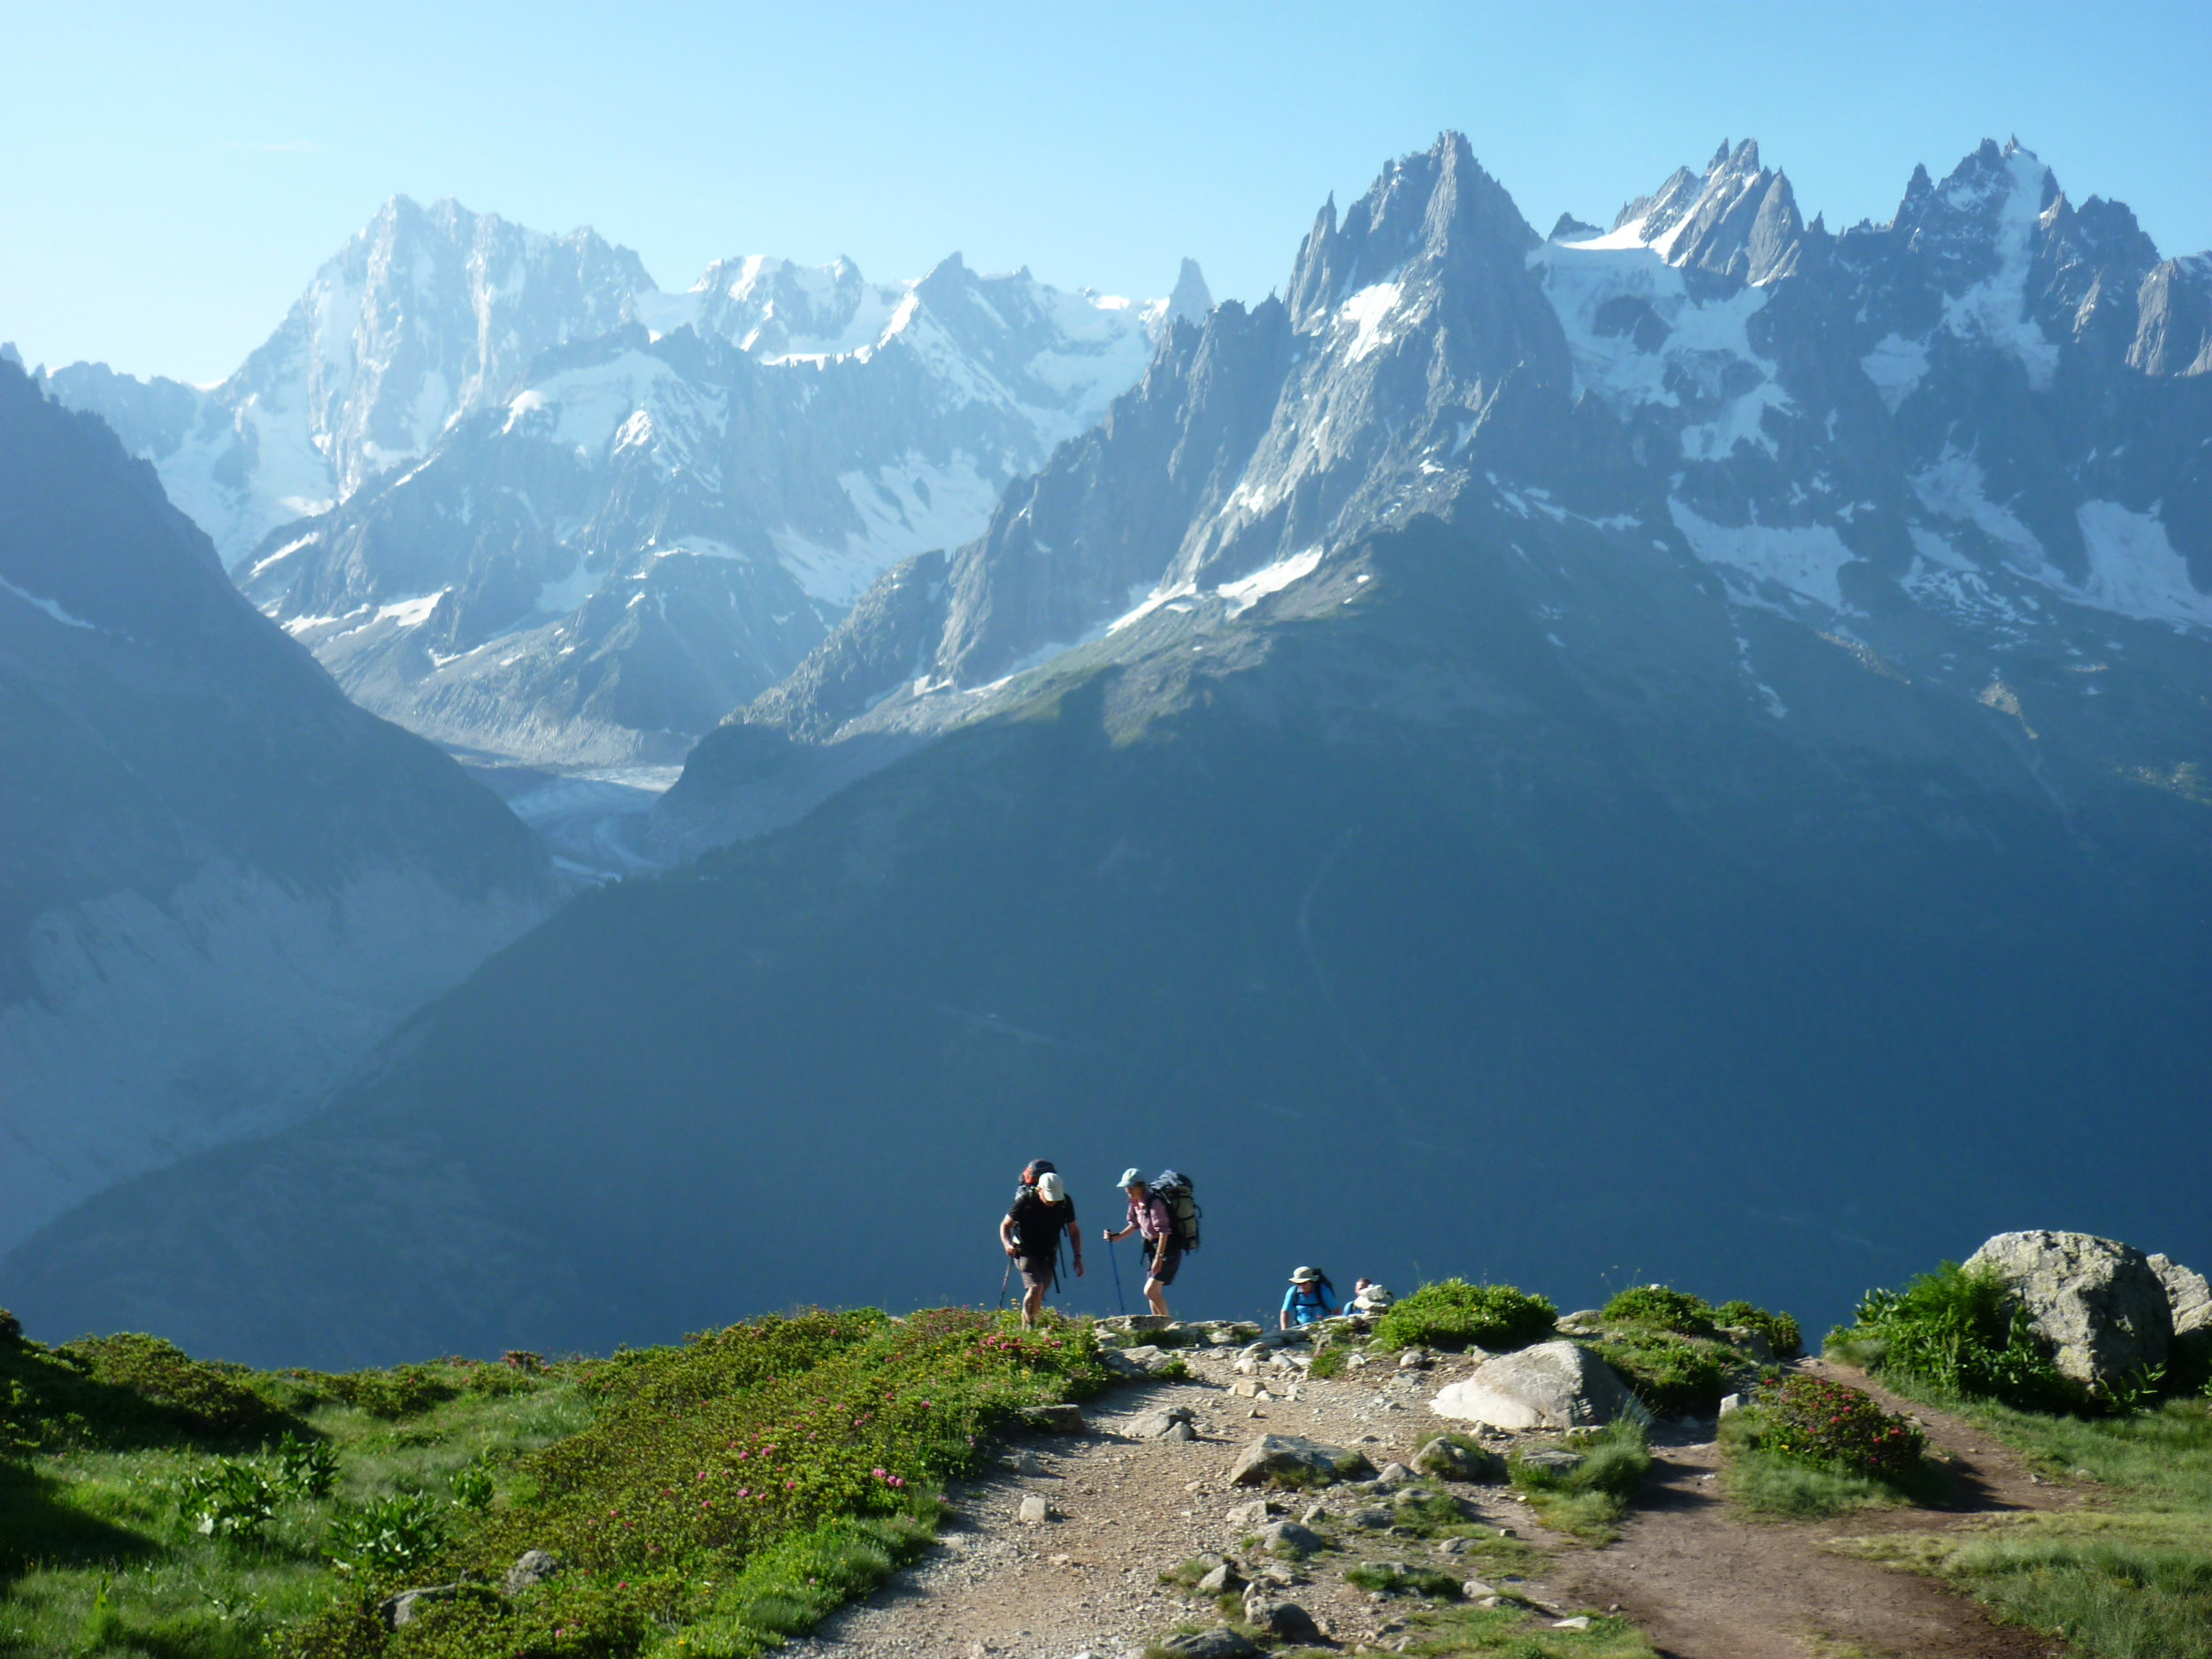 Mont Blanc Hotel Trek - Le Tour du Mont Blanc is one of the greatest walks in the world. Passing through France, Switzerland and Italy you'll see Europe's highest mountain from all sides.